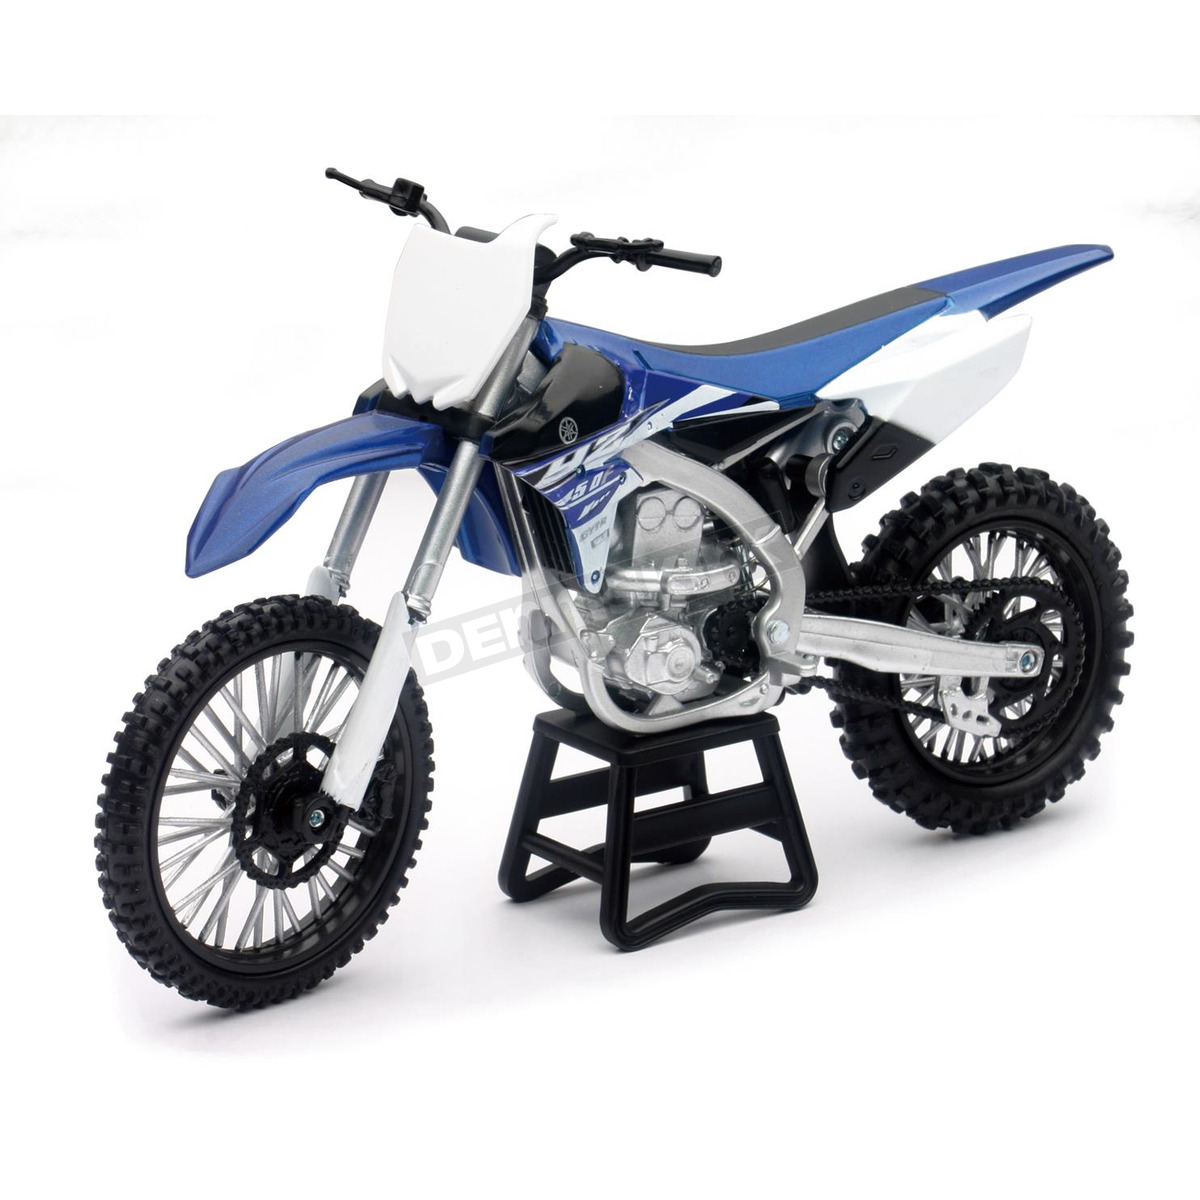 New ray toys 2015 yamaha yz450f 1 12 scale die cast model for New yamaha 450